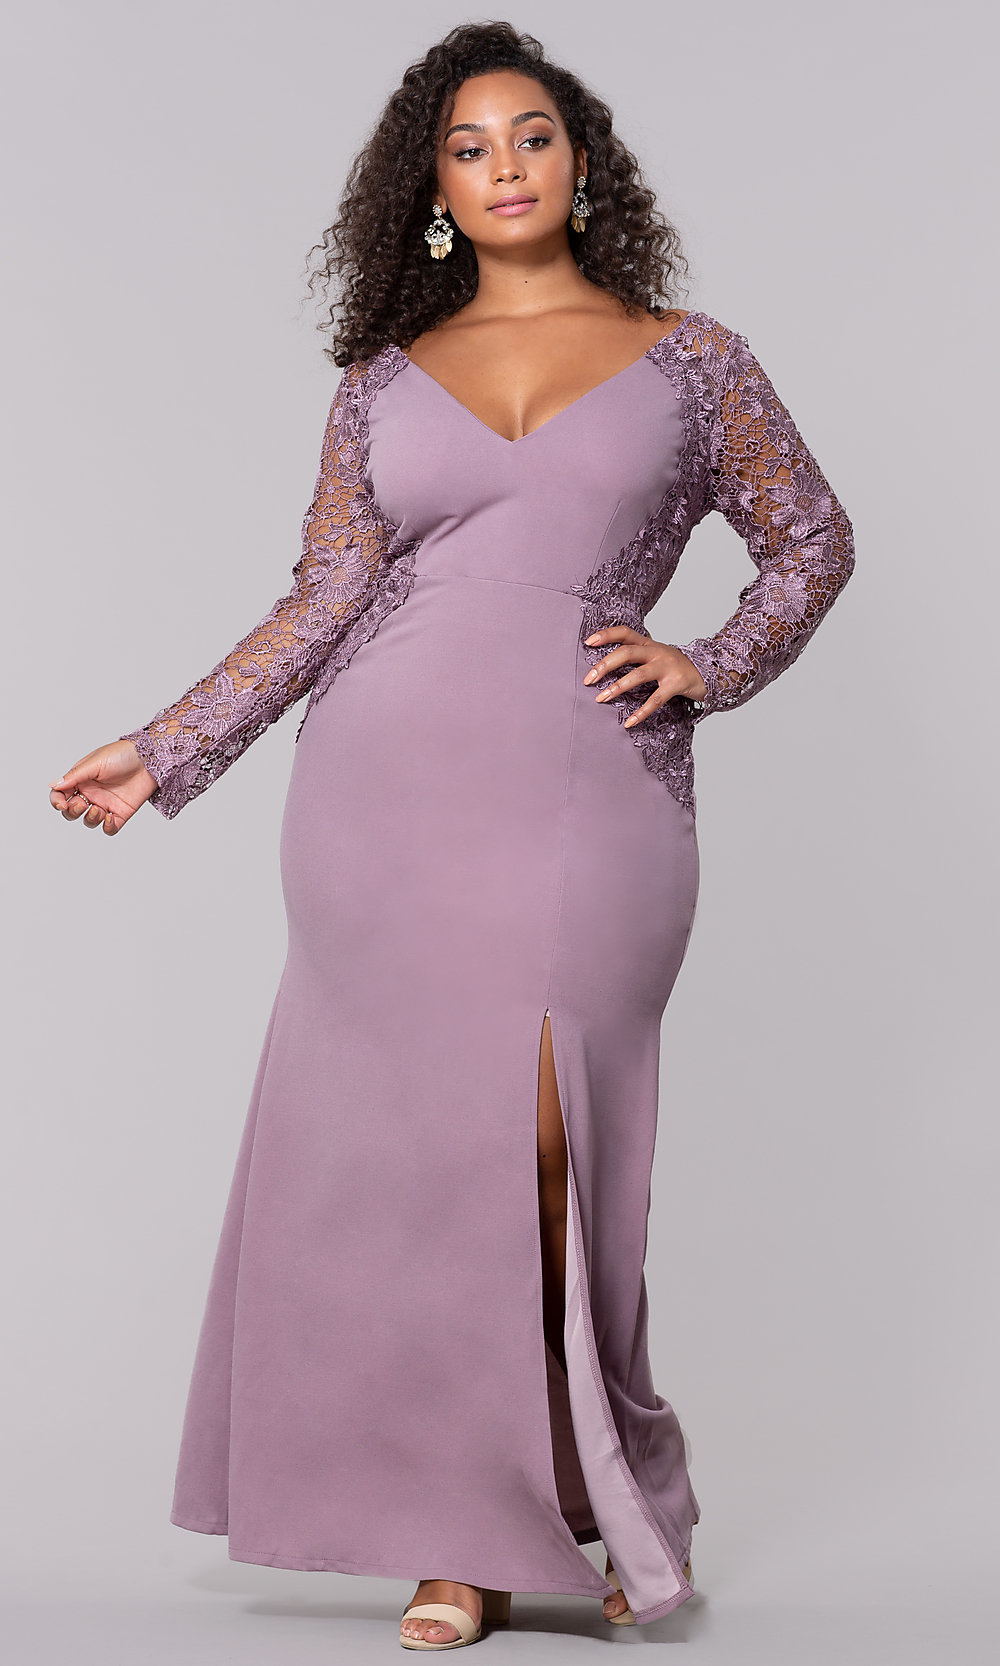 Plus-Size Formal Prom Dress with Long Lace Sleeves